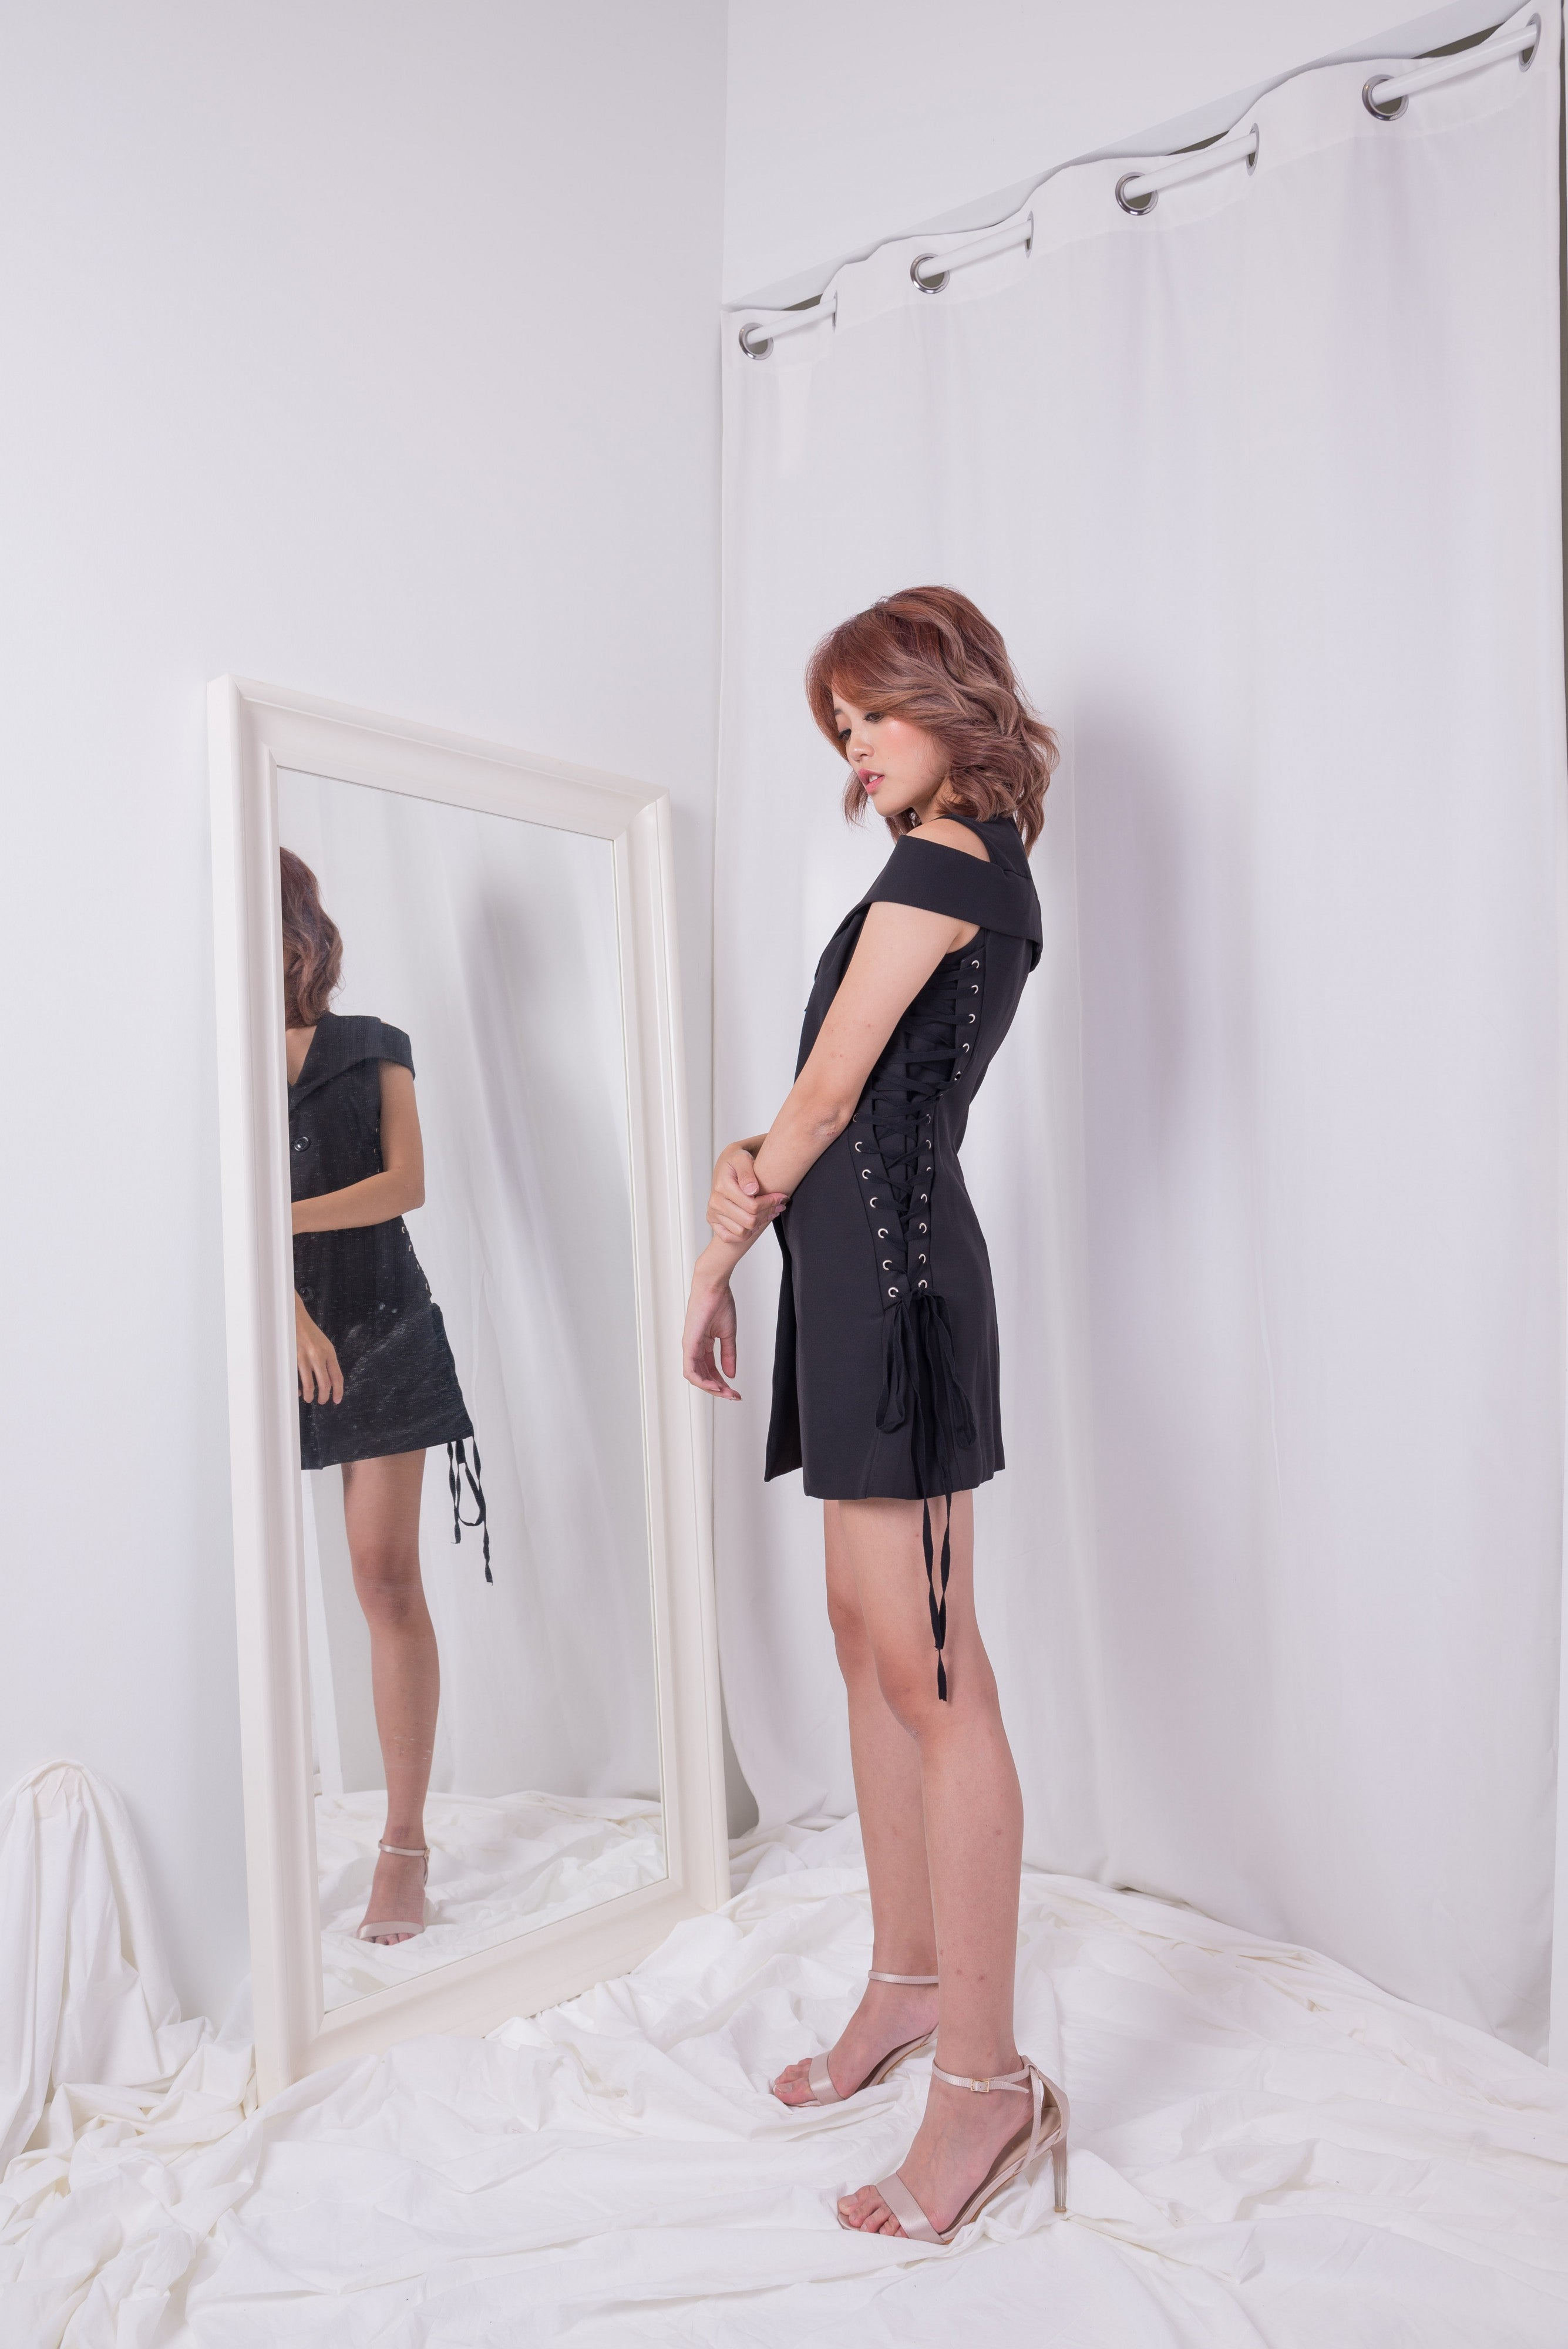 Moi Tie Black Dress